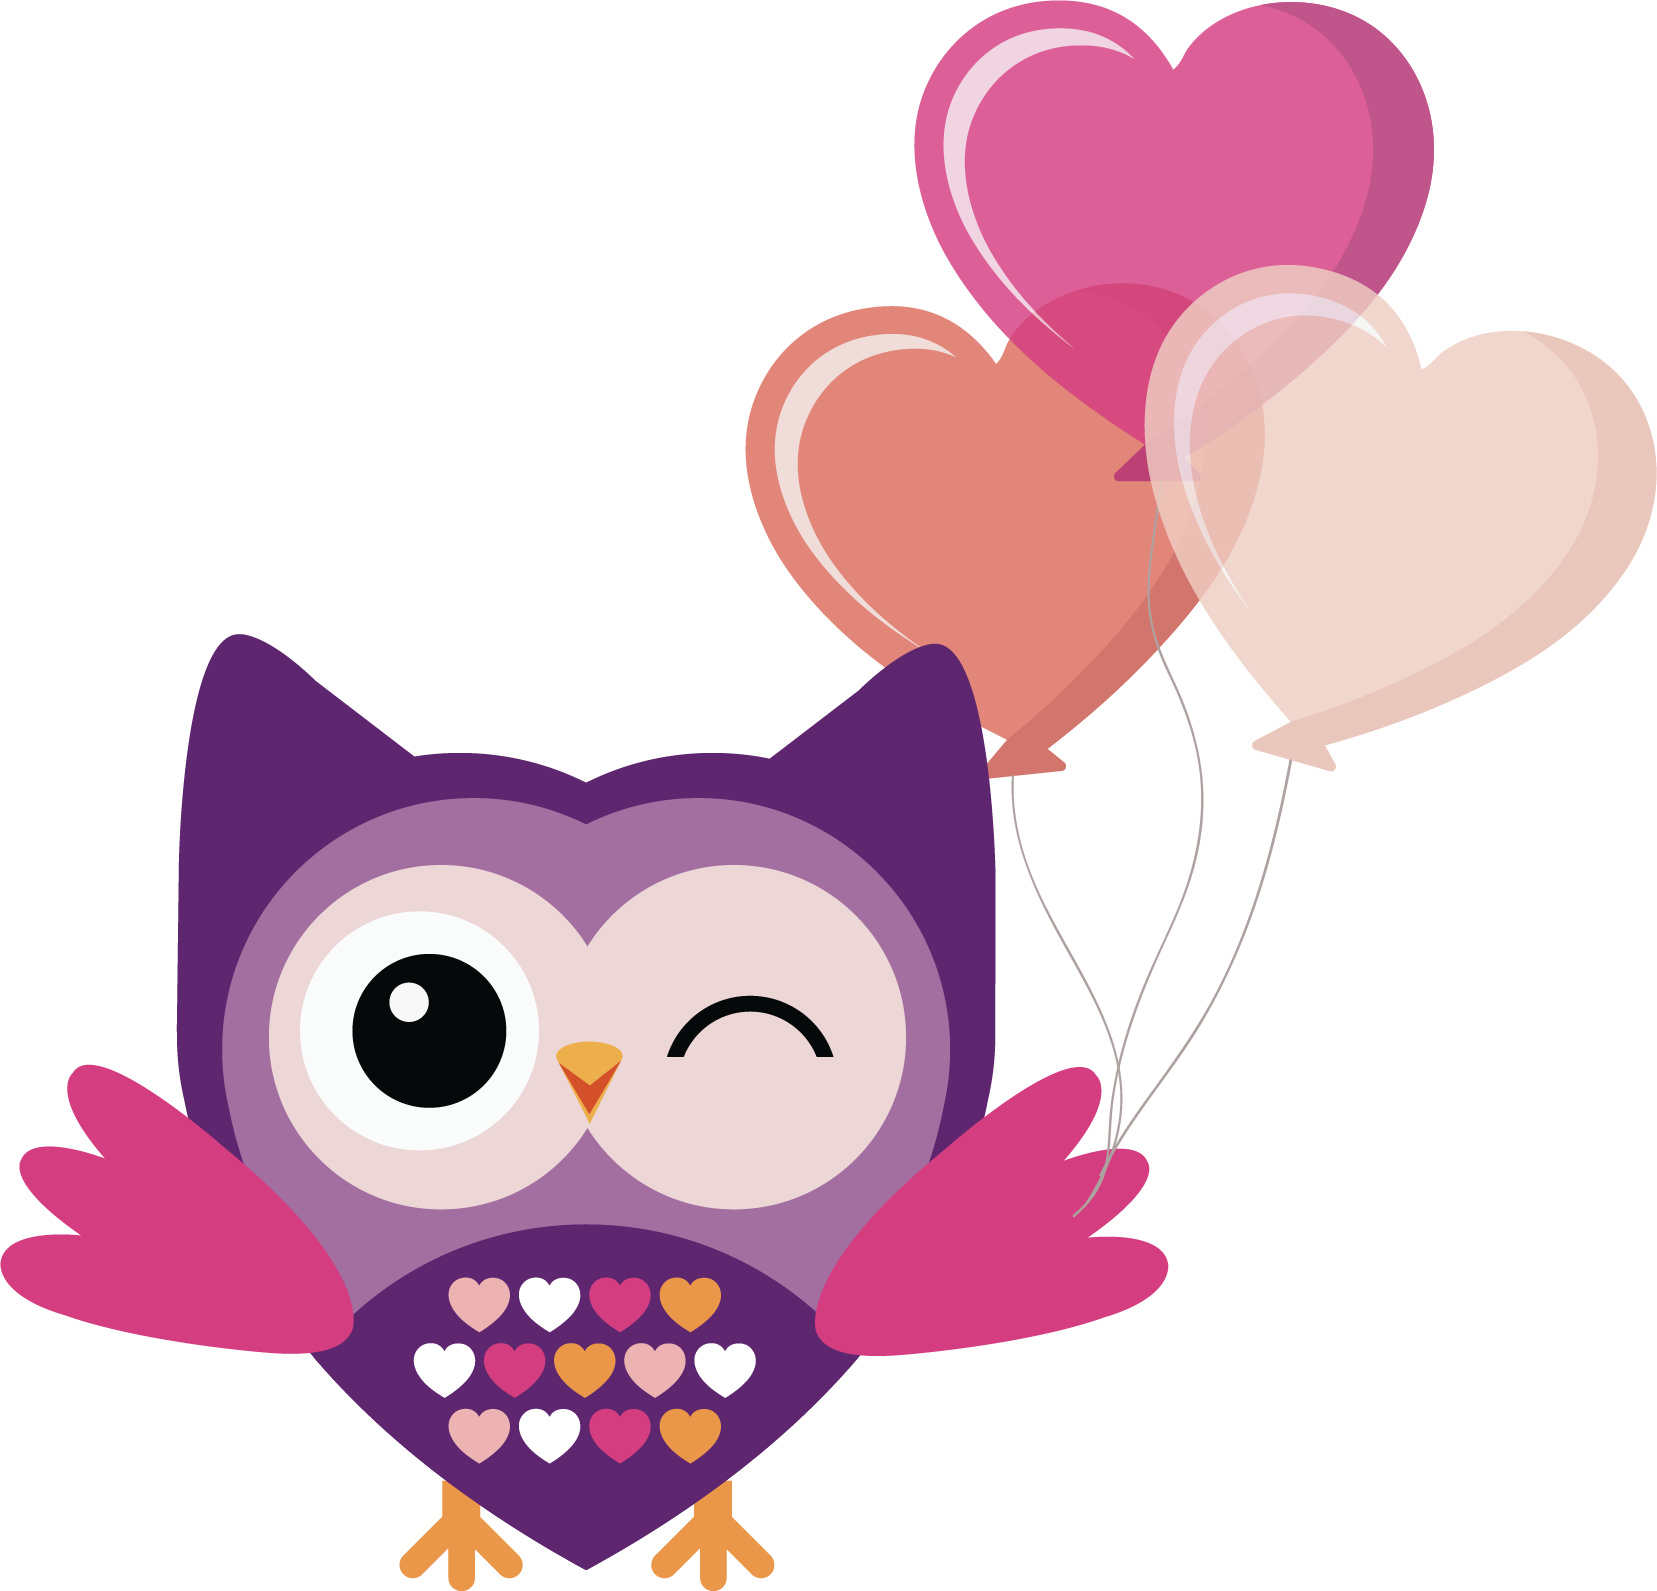 Clipart hearts owl. Png transparent free images